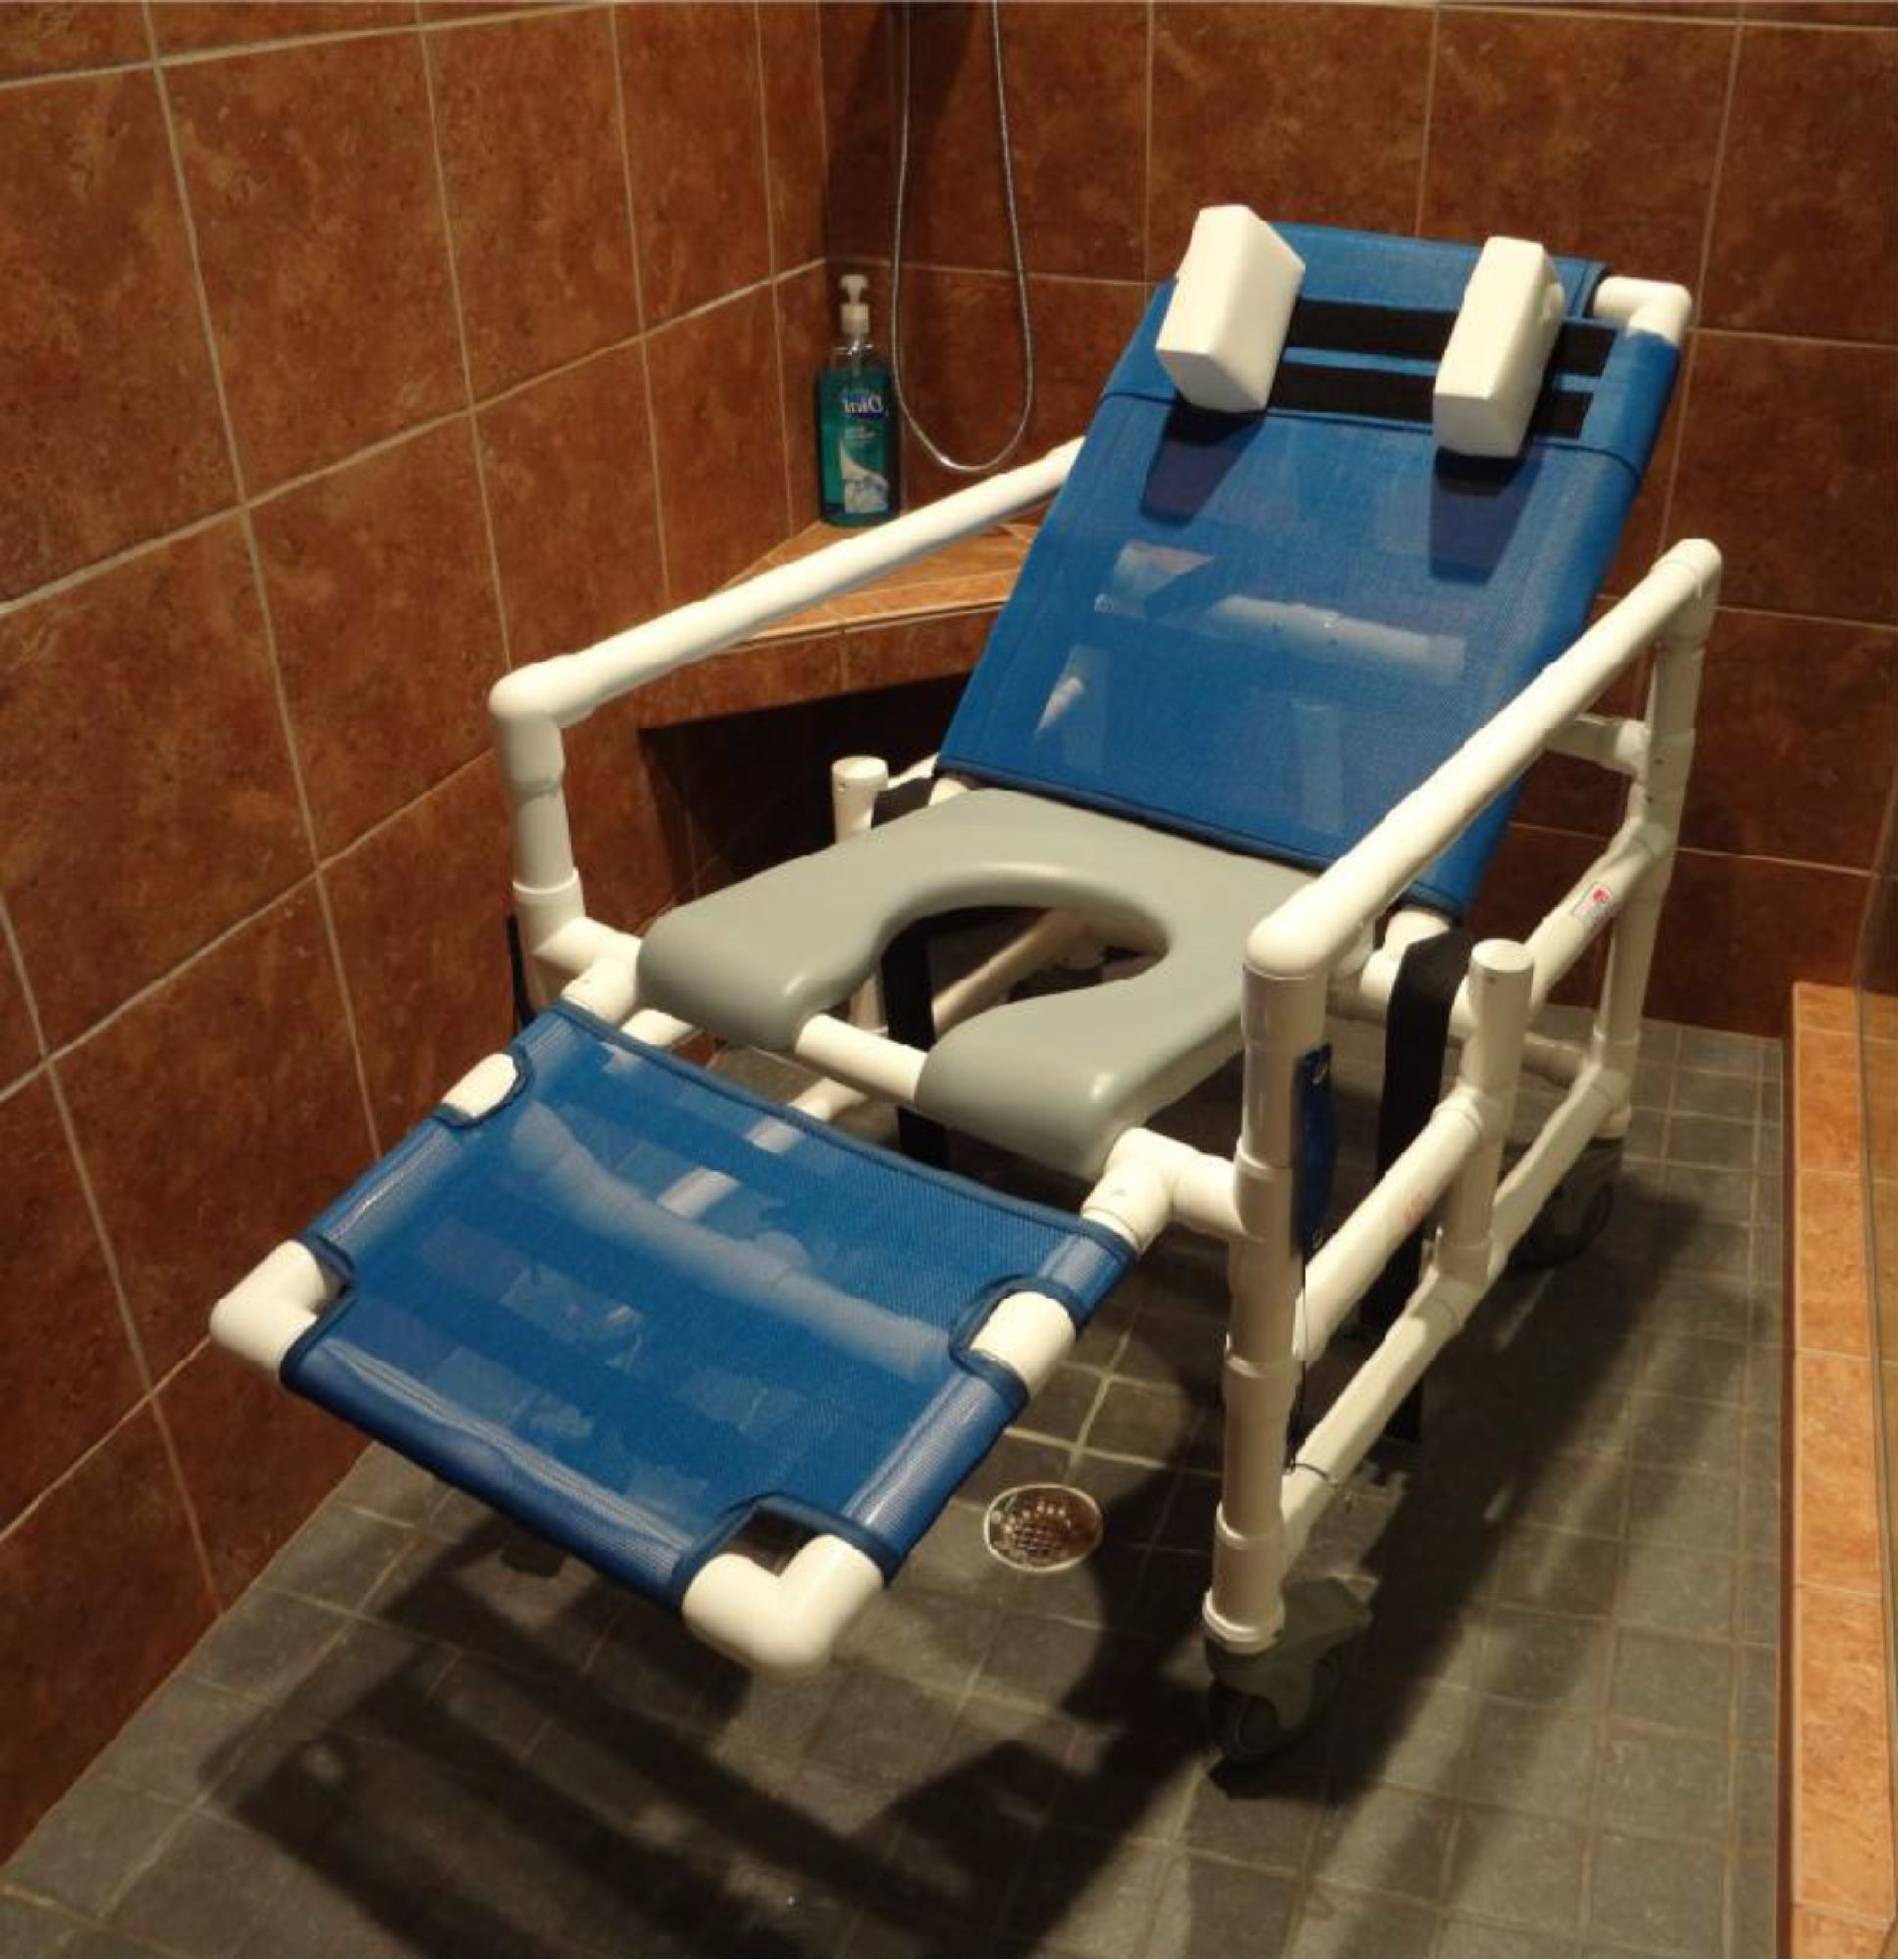 Handicap shower chairs pvc reclining shower commode chairs - Reclining Shower Chair